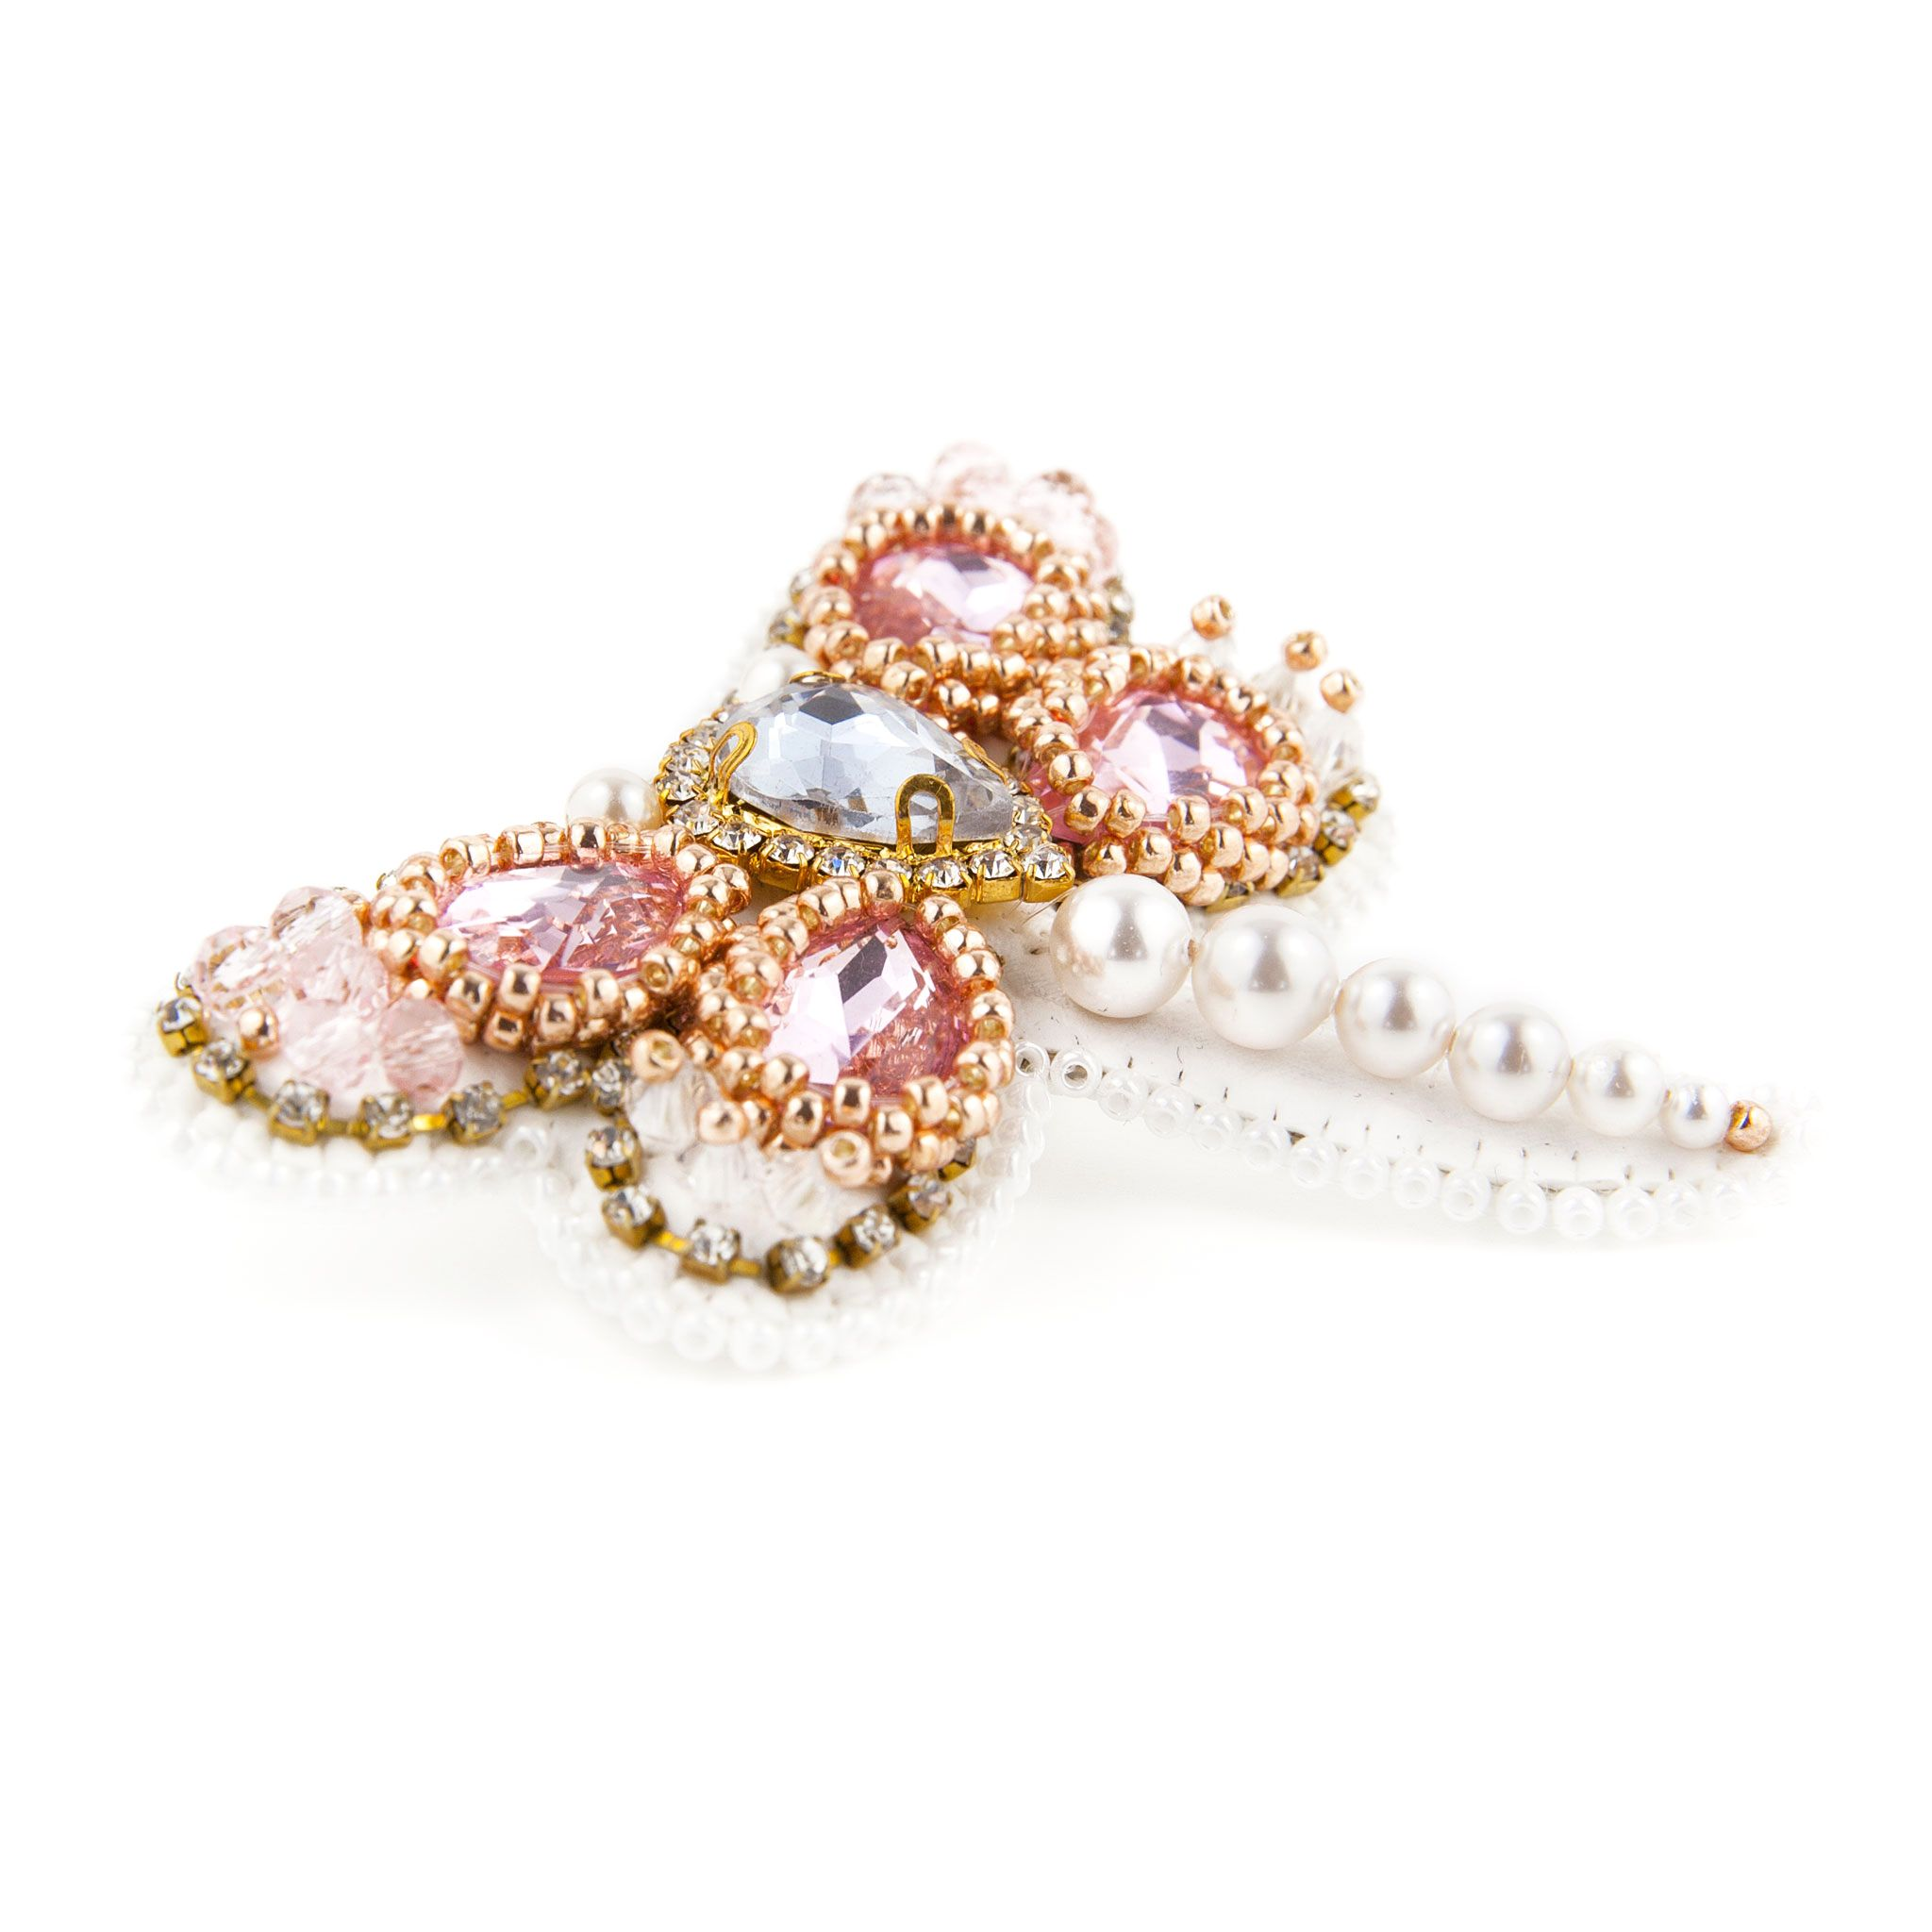 Touch of Luxury - Handmade Jewellery Art Avenue - Dragon-Fly-Shaped Beaded Brooch Decorated With Swarovski Crystals and Swarovski Pearls